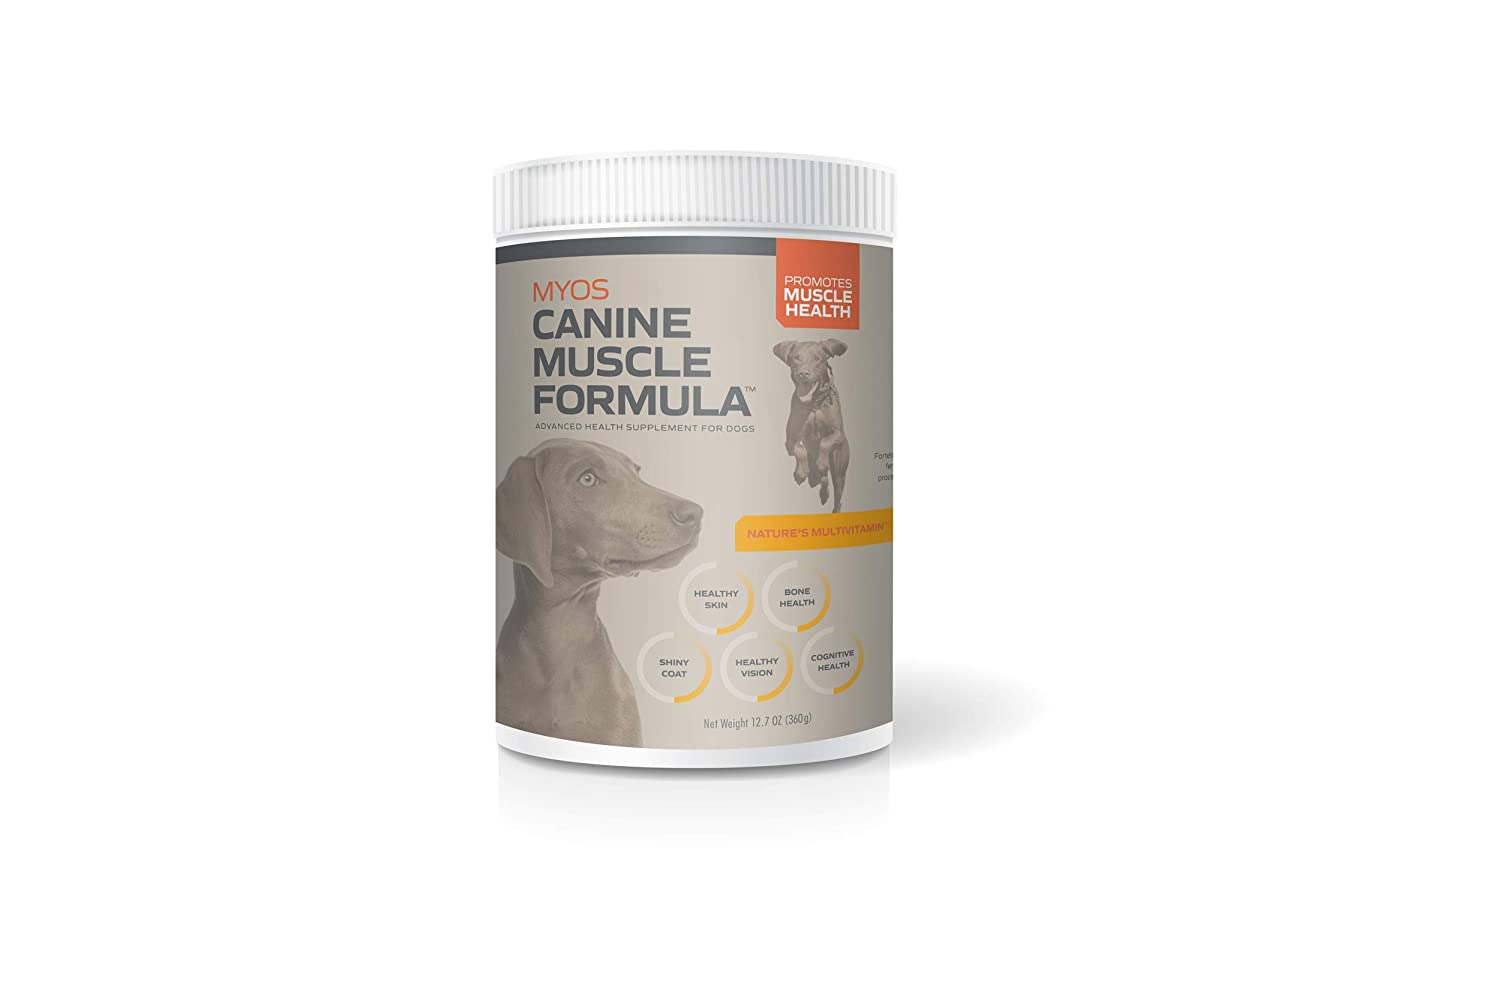 MYOS CANINE MUSCLE FORMULA Fertilized Egg Yolk Supplement for Dogs of All Ages to Build Muscle Mass Naturally – Daily Nutritional Remedy for Dog Health Recovery Support